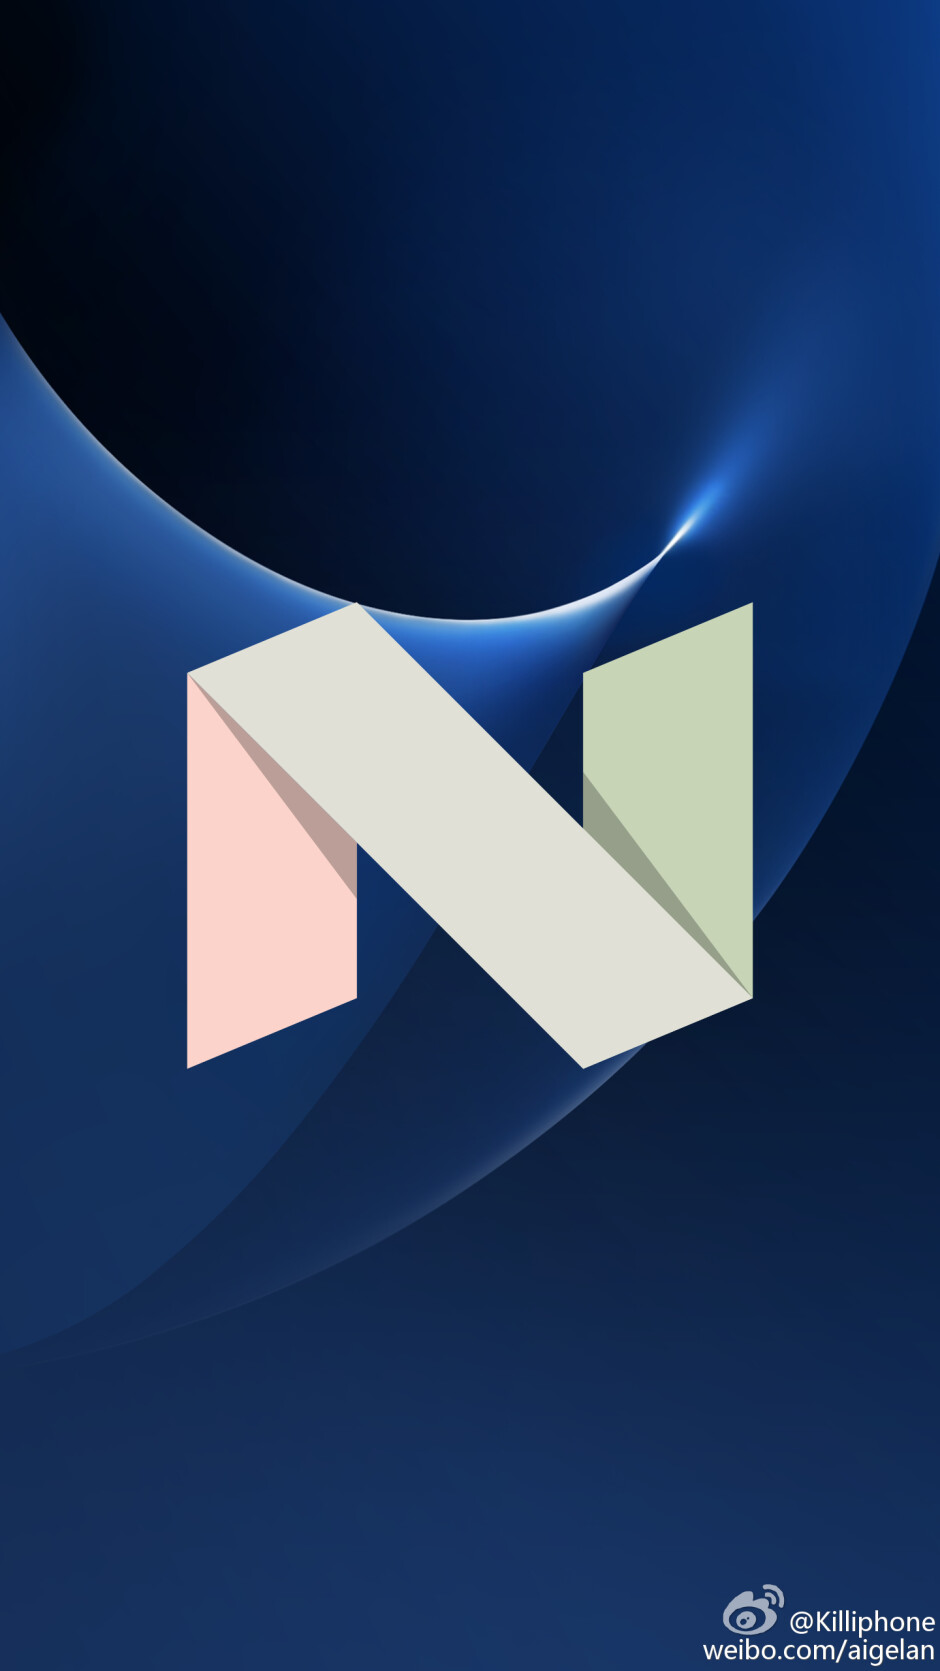 Screenshot of Android 7.0 Nougat on the Galaxy S7 edge - Galaxy S7 duo will get Grace UX, Always-on Display improvements with Android Nougat